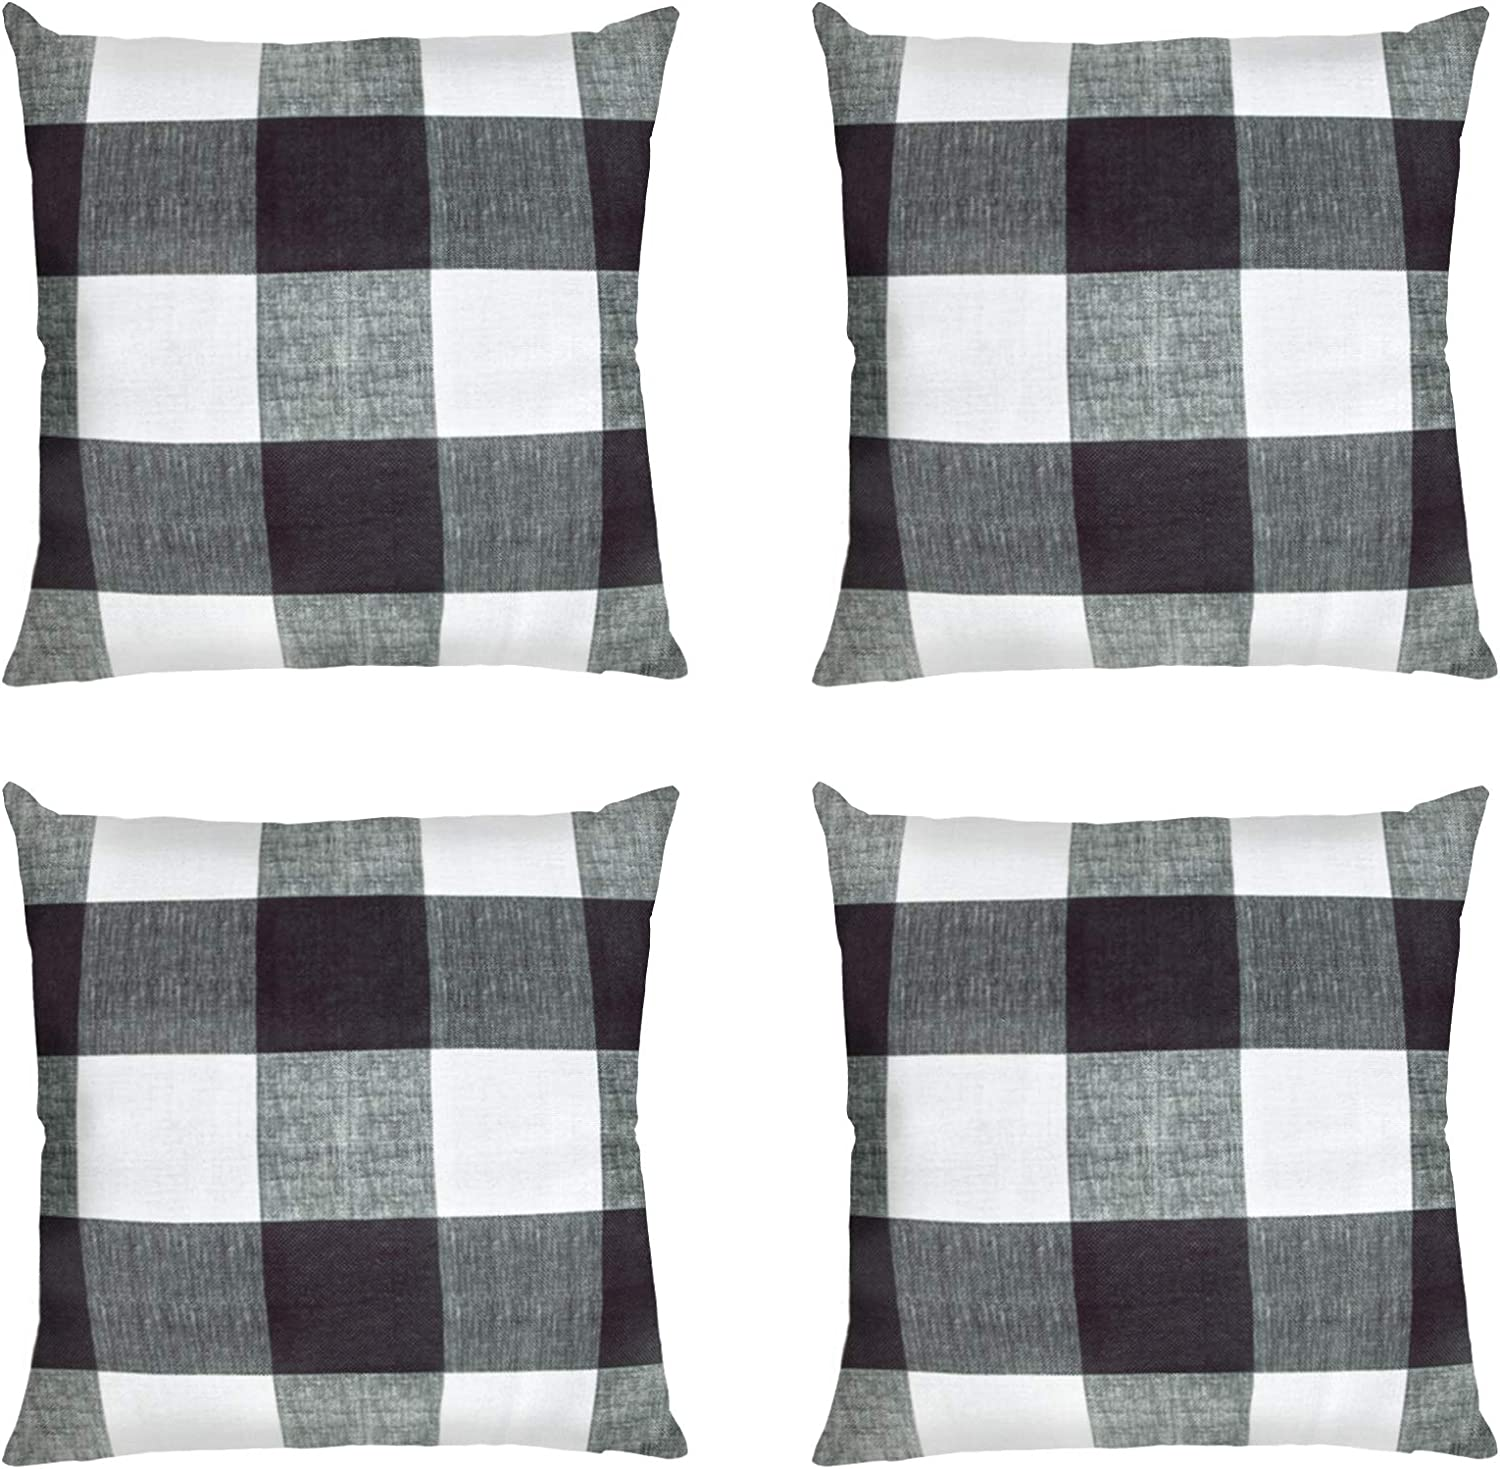 Ouddy Farmhouse Buffalo Check Plaid Throw Pillow Covers 20 x 20 Set of 4, Decorative Square Plaid Pillow Covers Case Cotton Linen Cushion for Fall Chritsmas Outdoor Home Proch Decor Sofa Bedroom Car